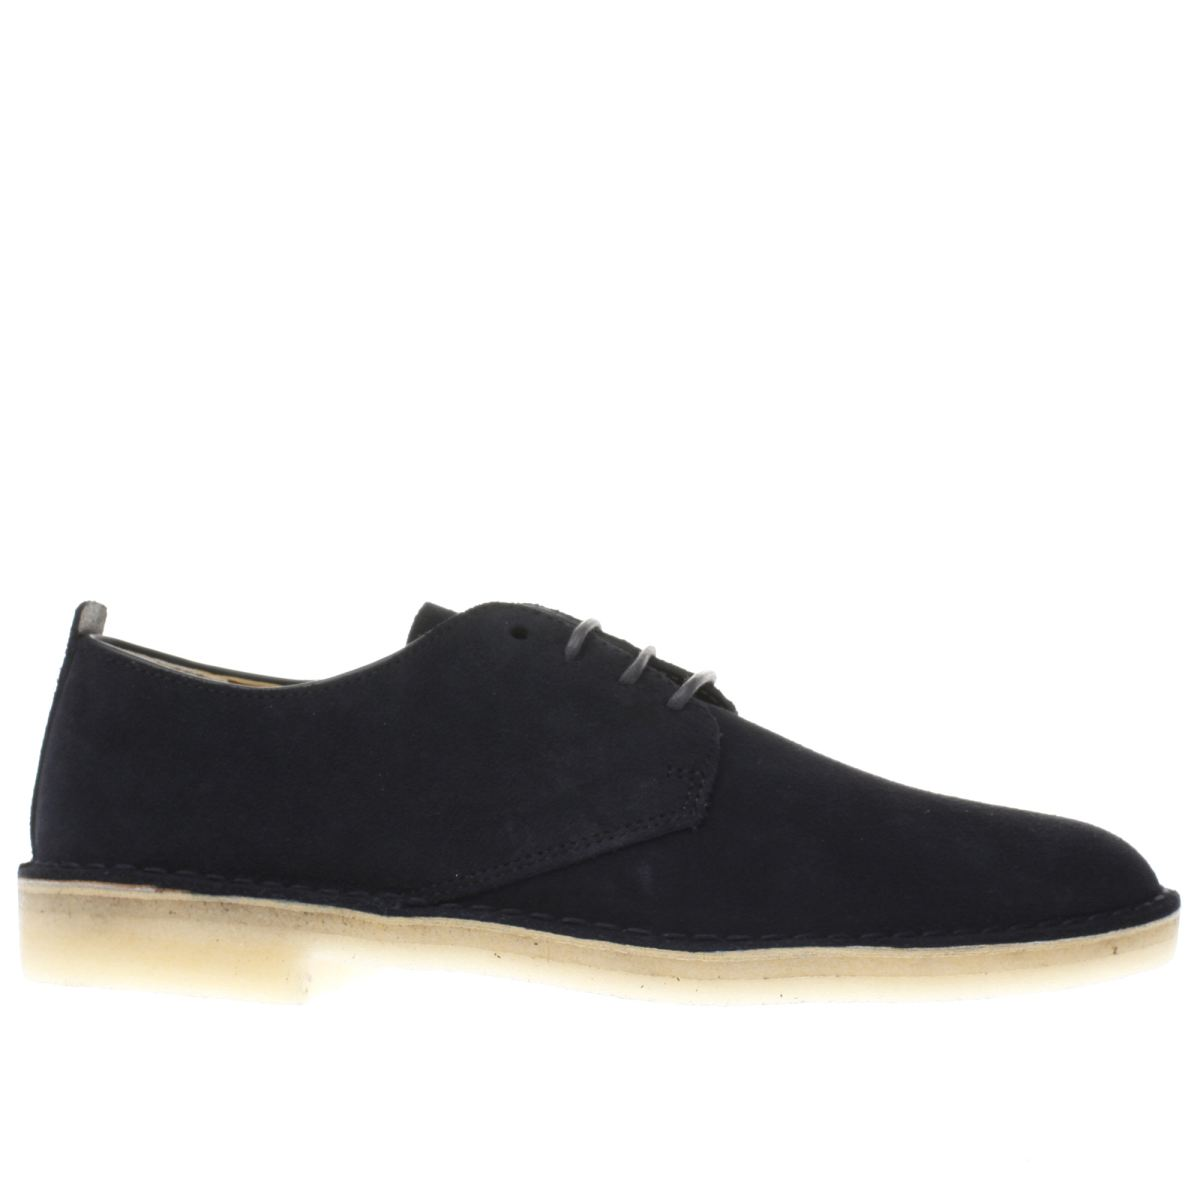 clarks originals navy clarks desert london shoes